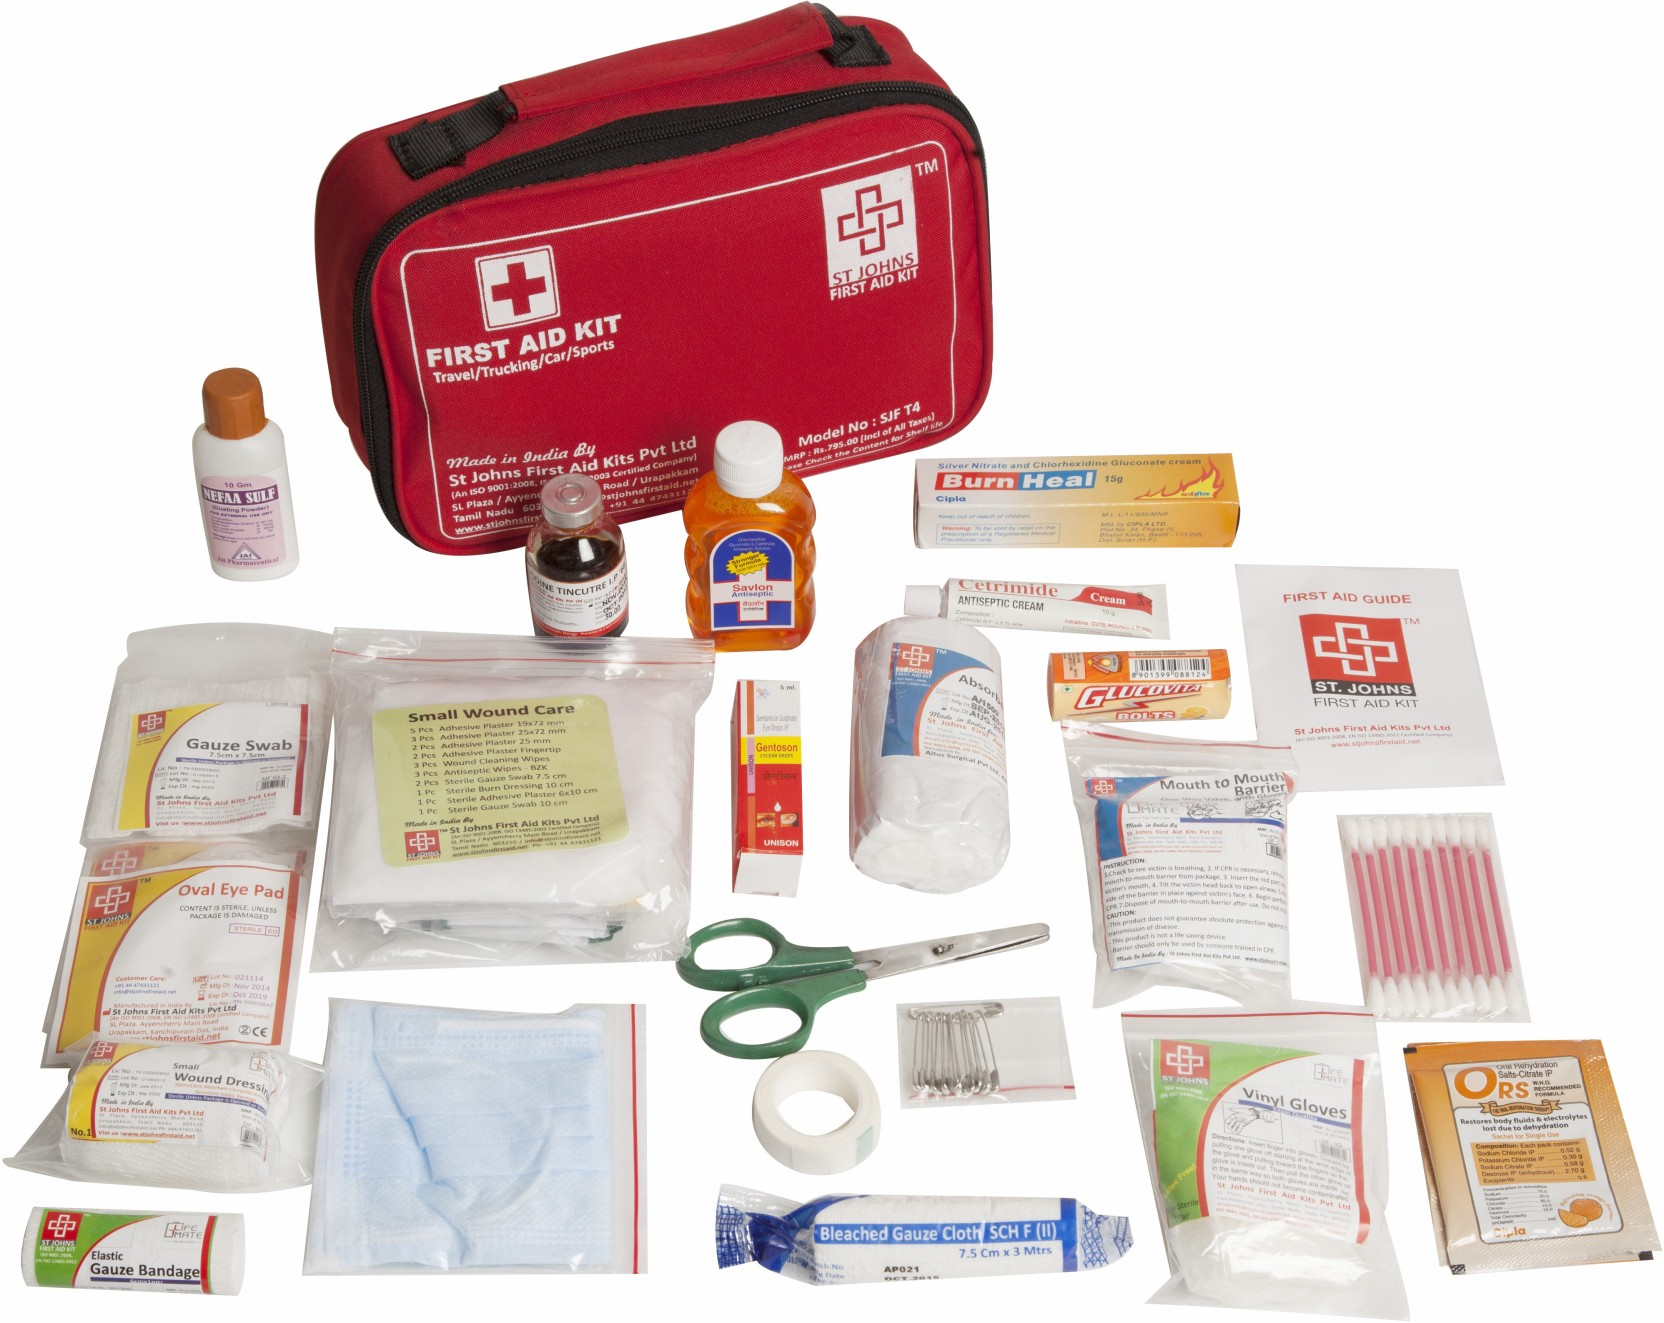 ST JOHNS FIRST AID SJF T4 First Aid Kit Price in India ...